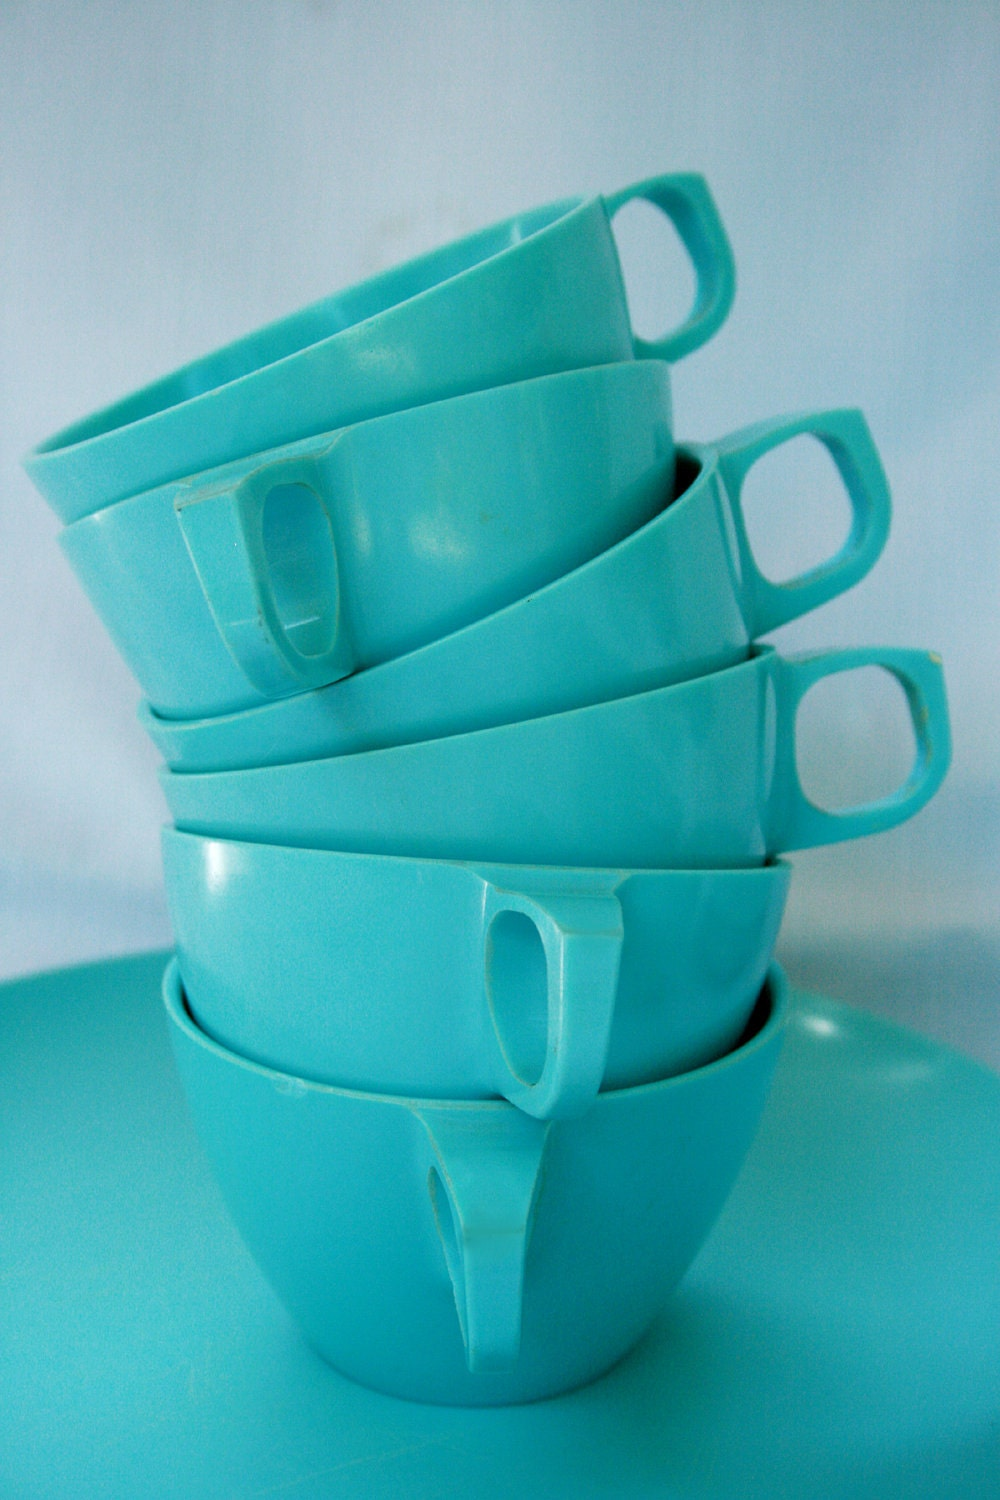 Vintage turquoise melmac dishes 25 piece set of 1960 for Cuisine turquoise